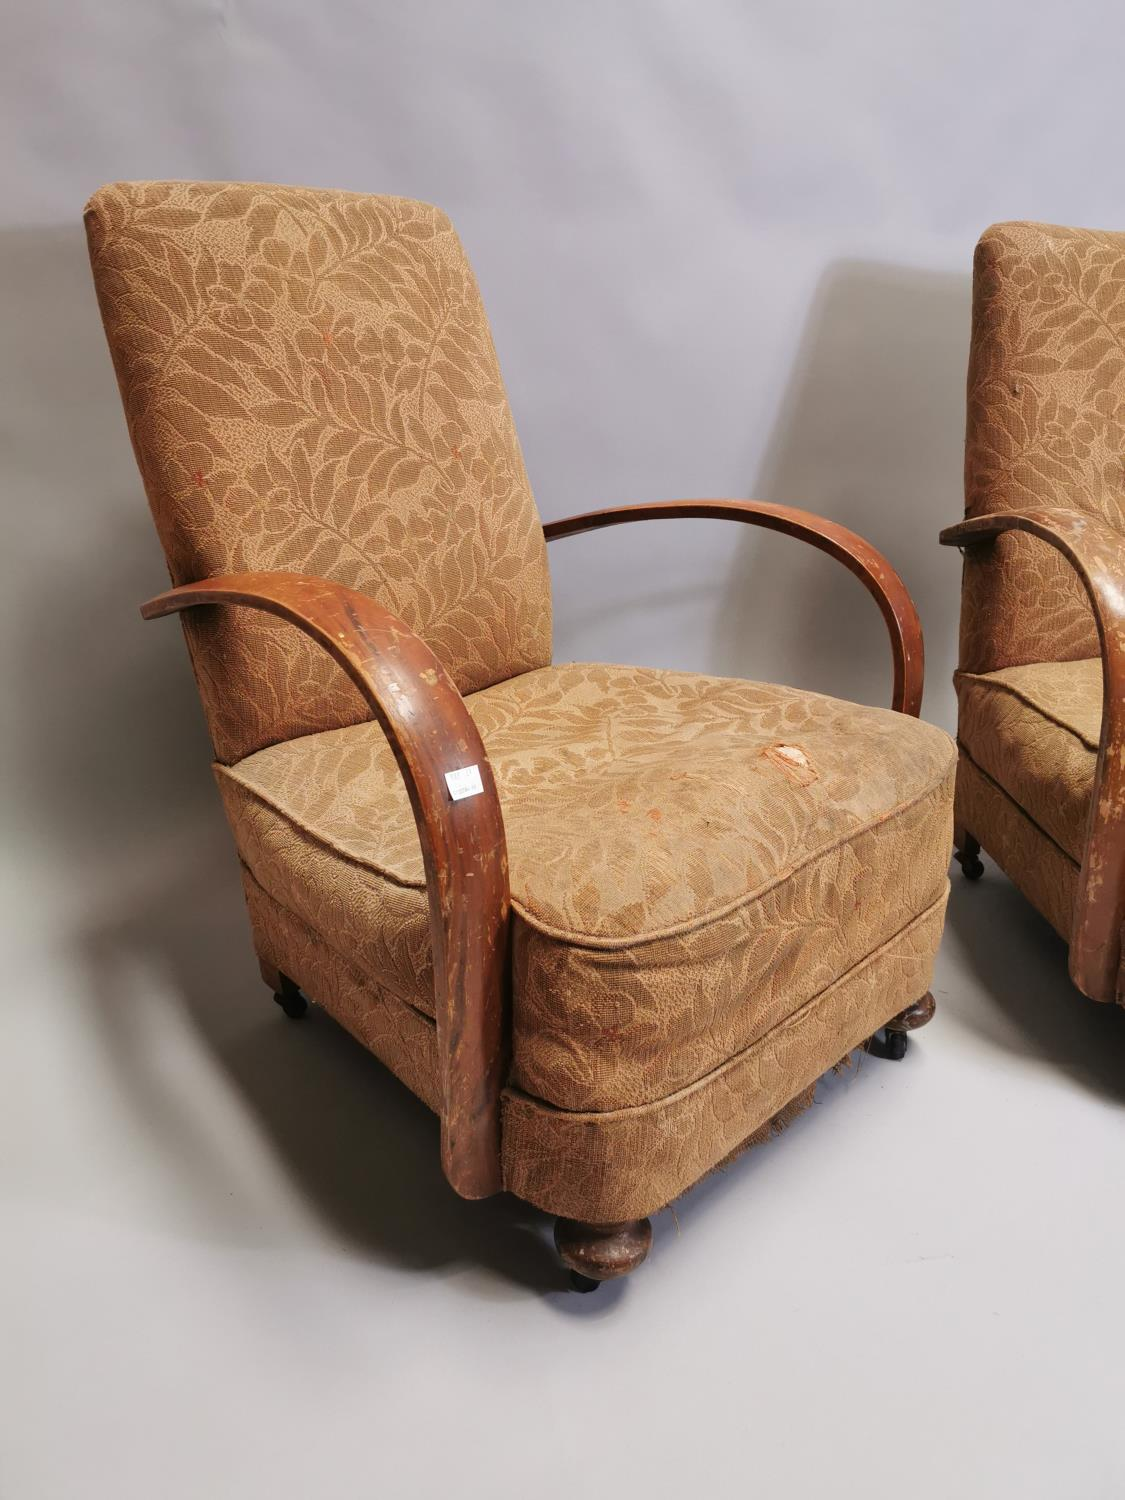 Pair of 1940's upholstered open armchairs - Image 5 of 5